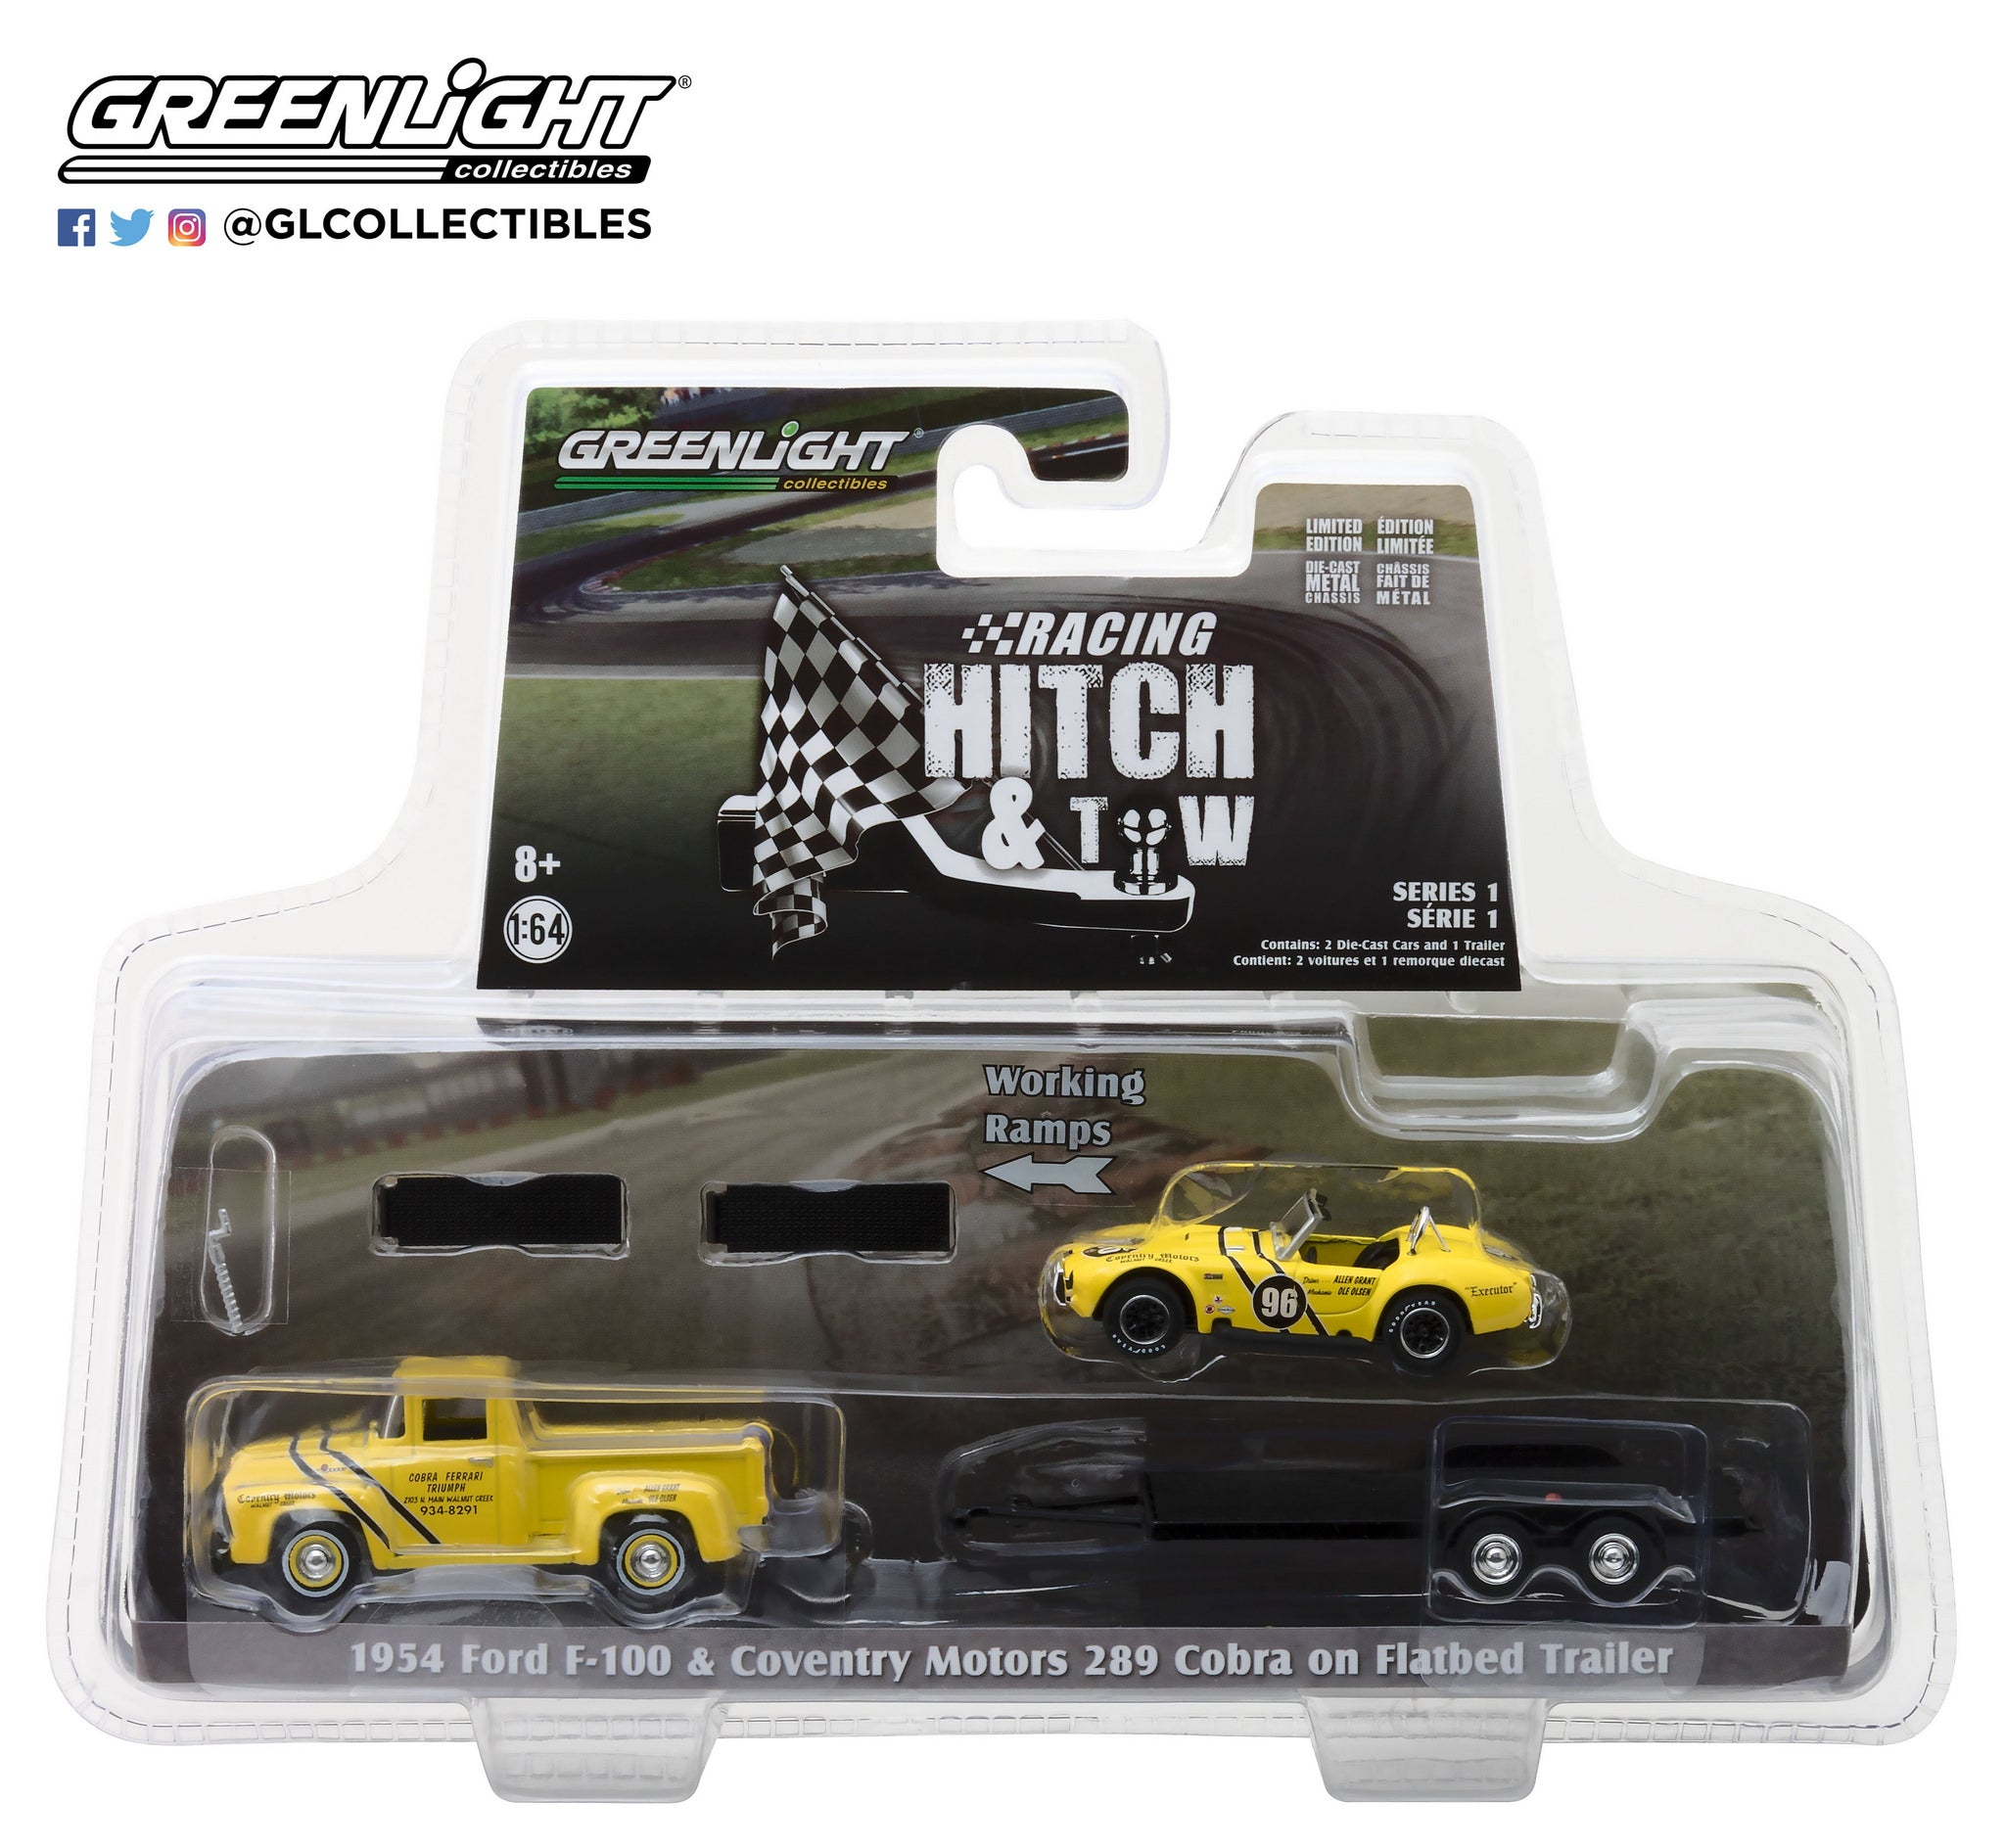 Greenlight 1 64 Racing Hitch Tow Series 1954 Ford F 100 And Dodge Truck